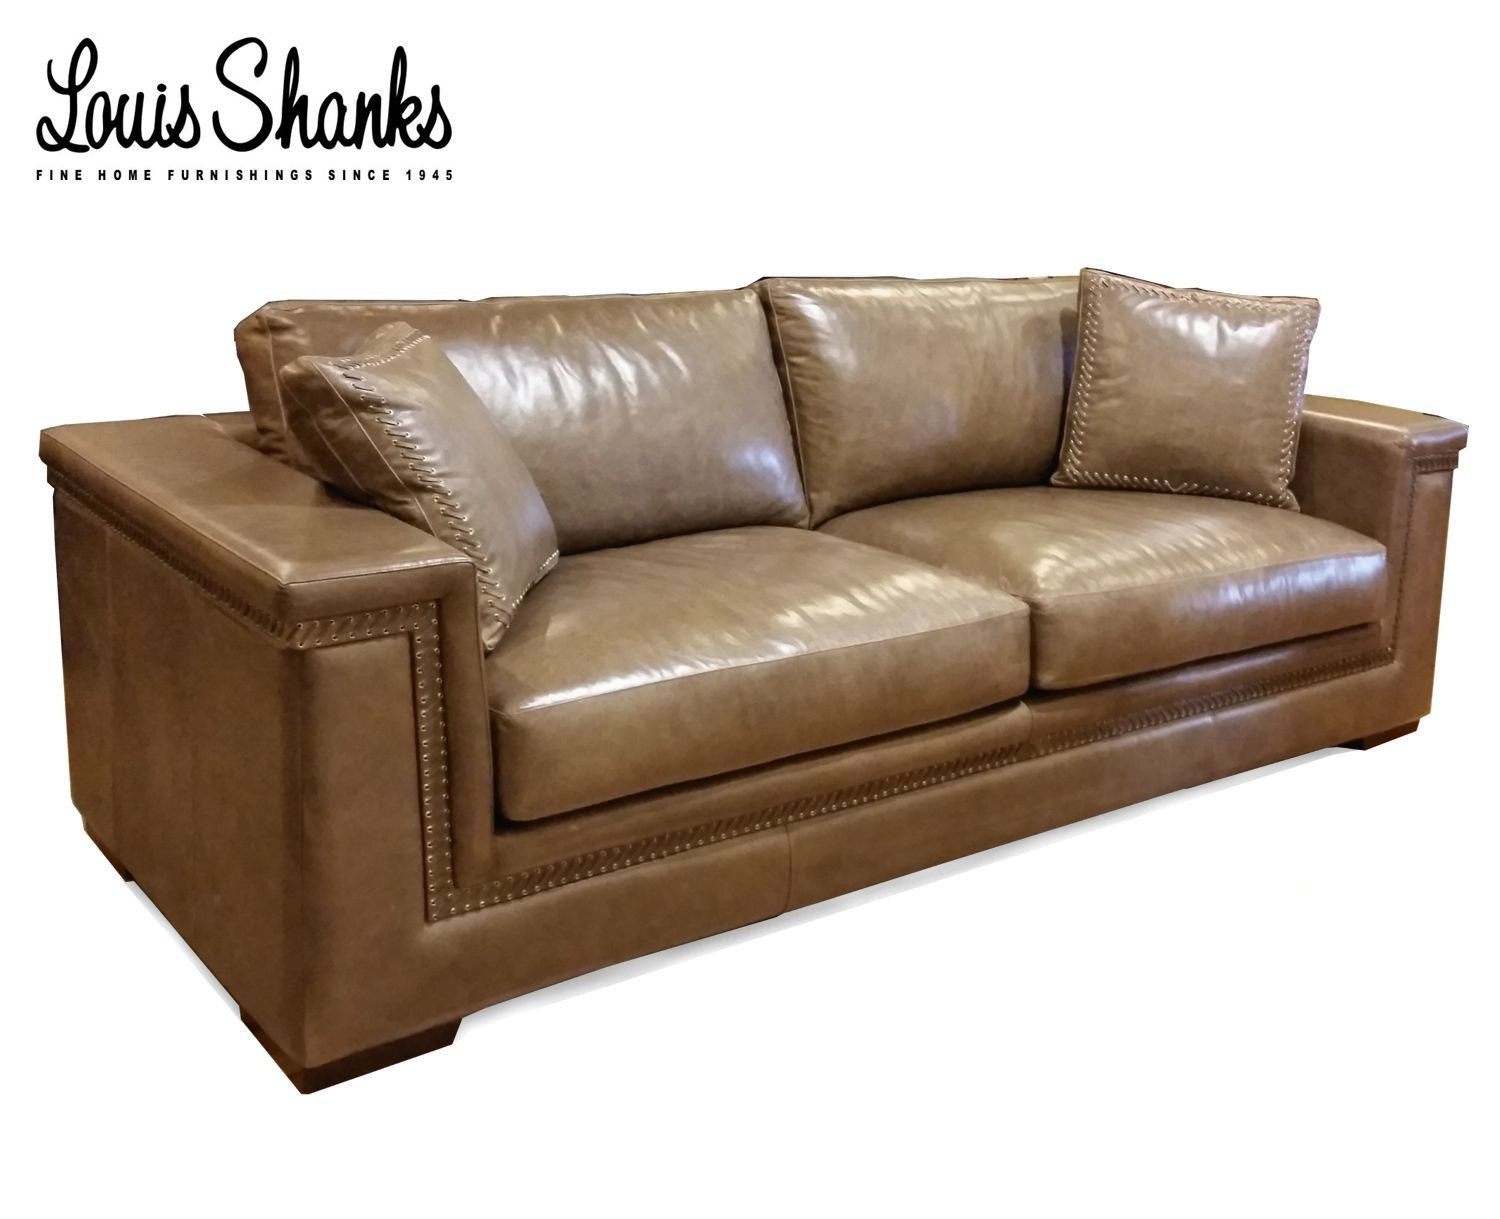 Beau Artistic Leather Leather Sofa With Hand Lacing AL 1221 3 S